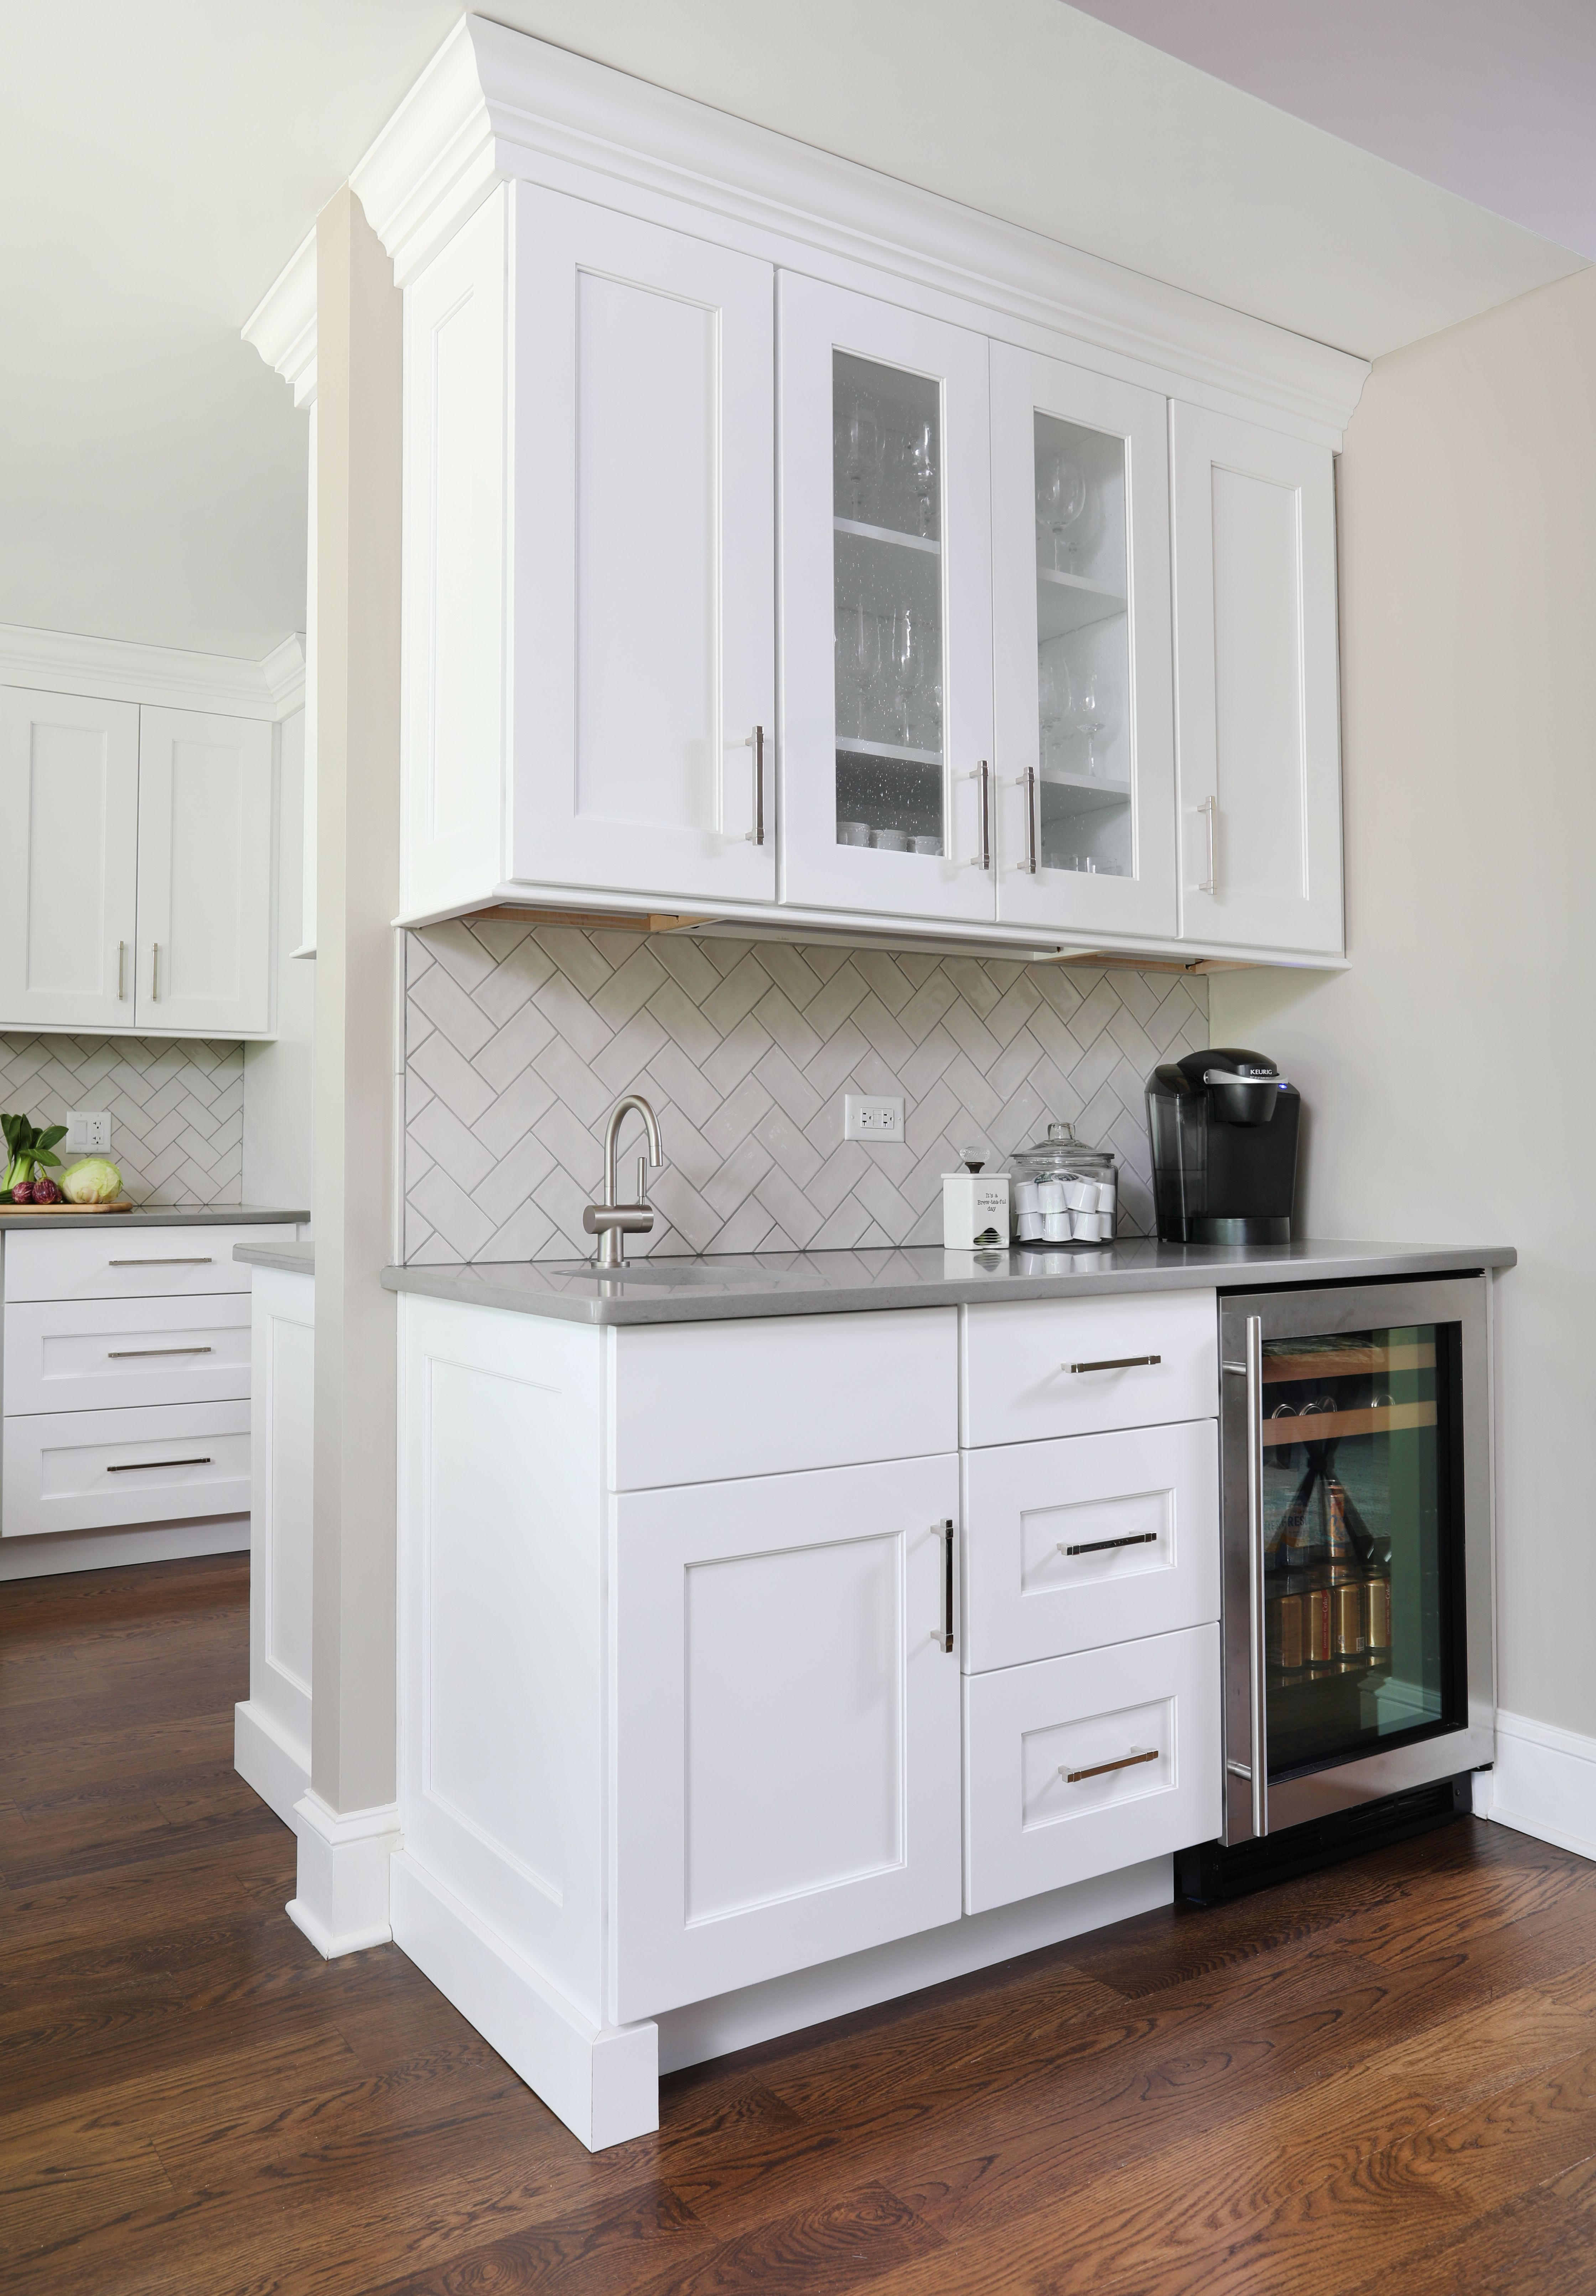 Coffee Bar Ideas Glass Front Cabinets Small Sink Drawers Specialty Storage Small Refrigerator Etc Kitchen Bar Design Coffee Bar Design Coffee Bar